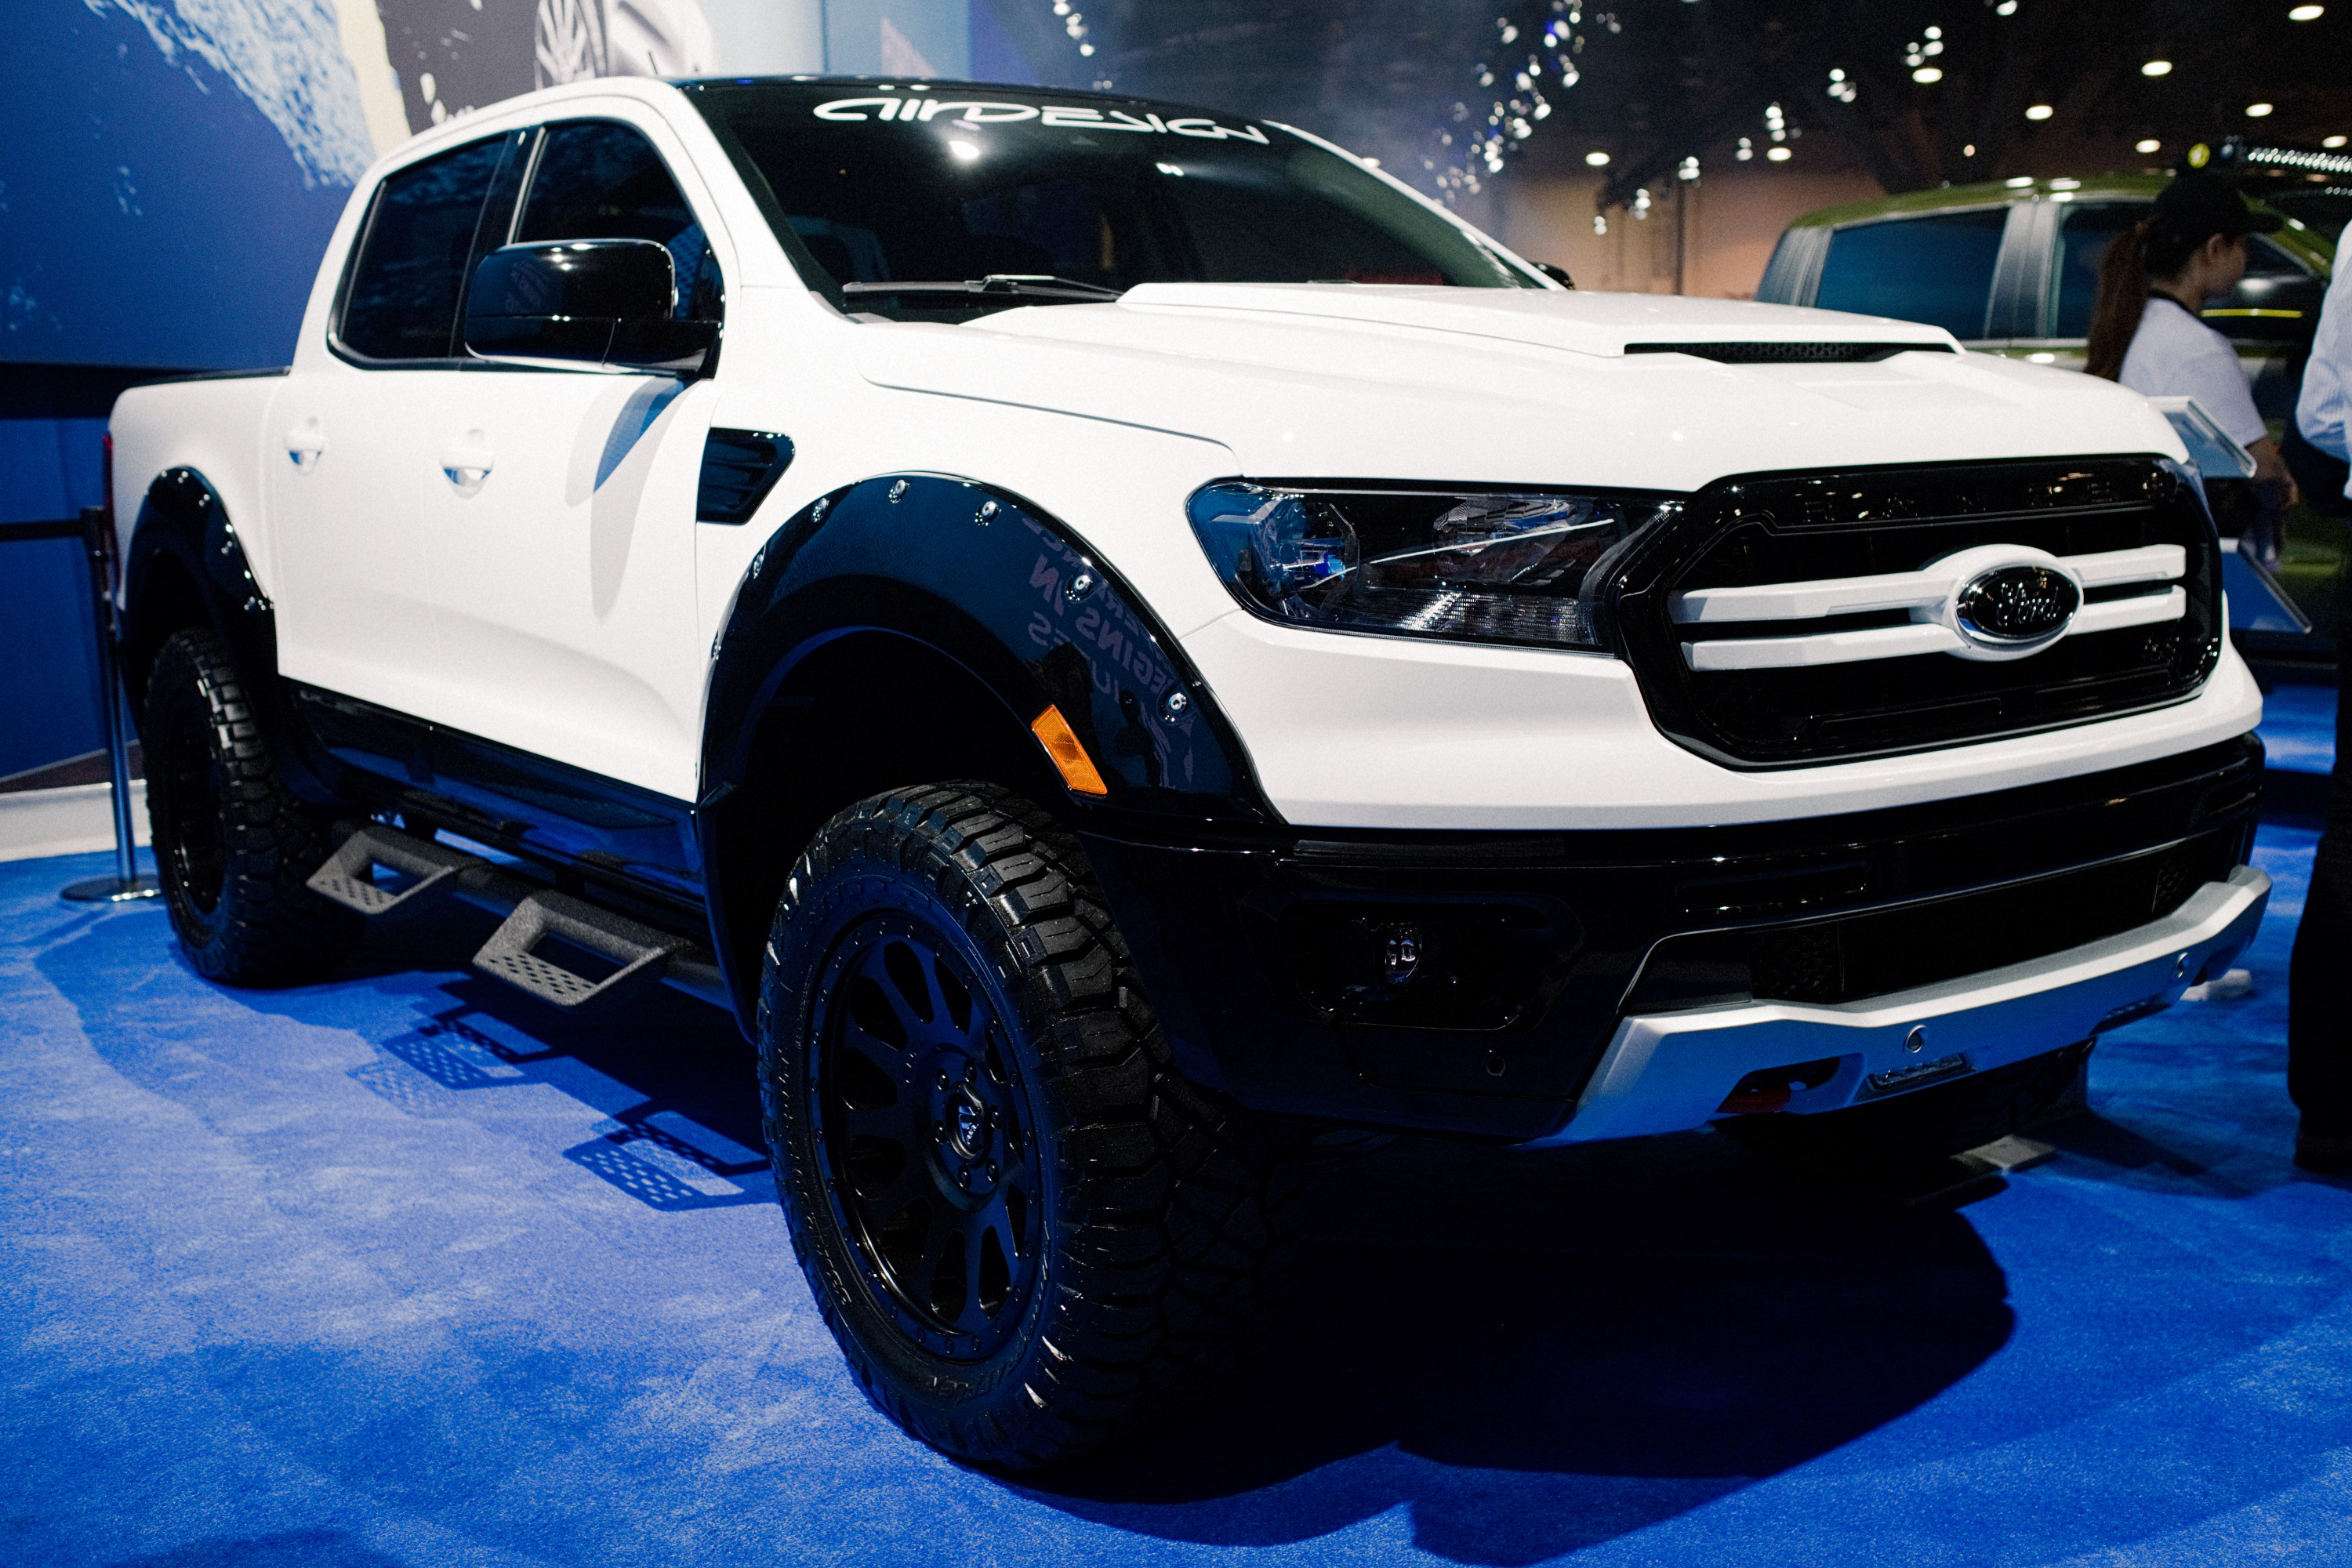 custom 2019 ford rangers on display at the 2018 sema show. Black Bedroom Furniture Sets. Home Design Ideas